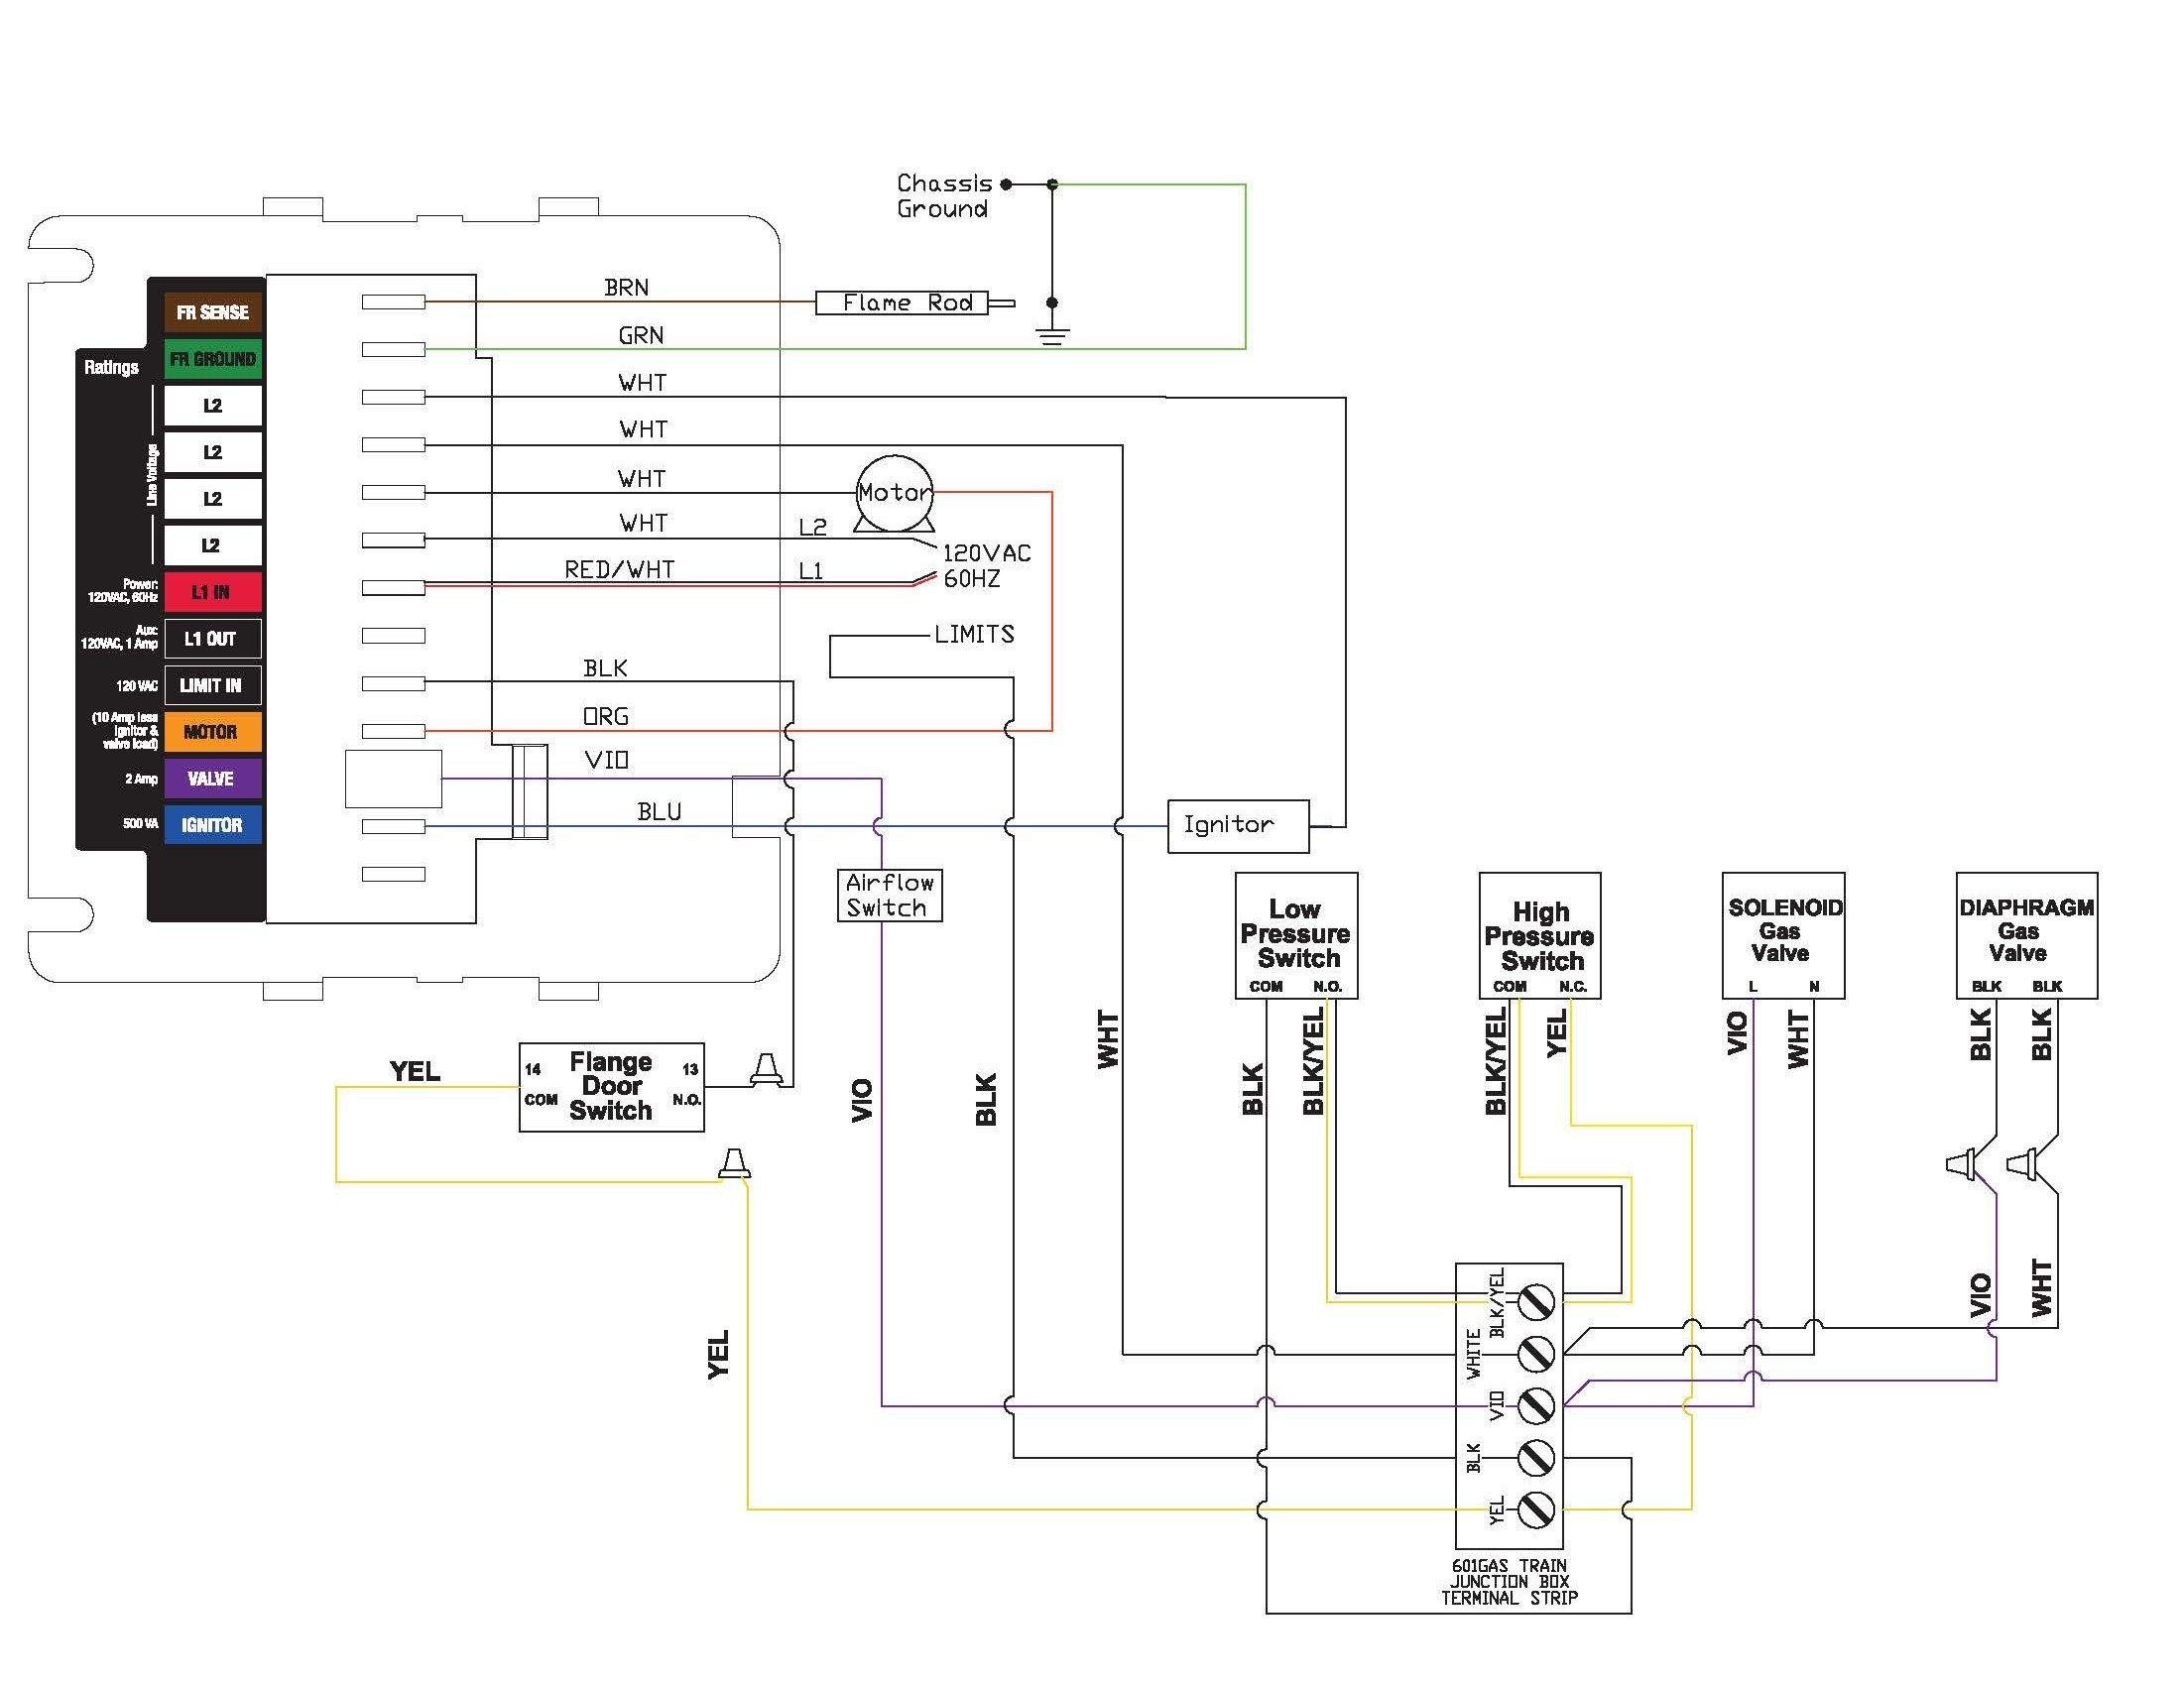 Wiring Diagram – Carlin Combustion Technology, Inc. | Long 680 Wiring Diagram |  | Carlin Combustion